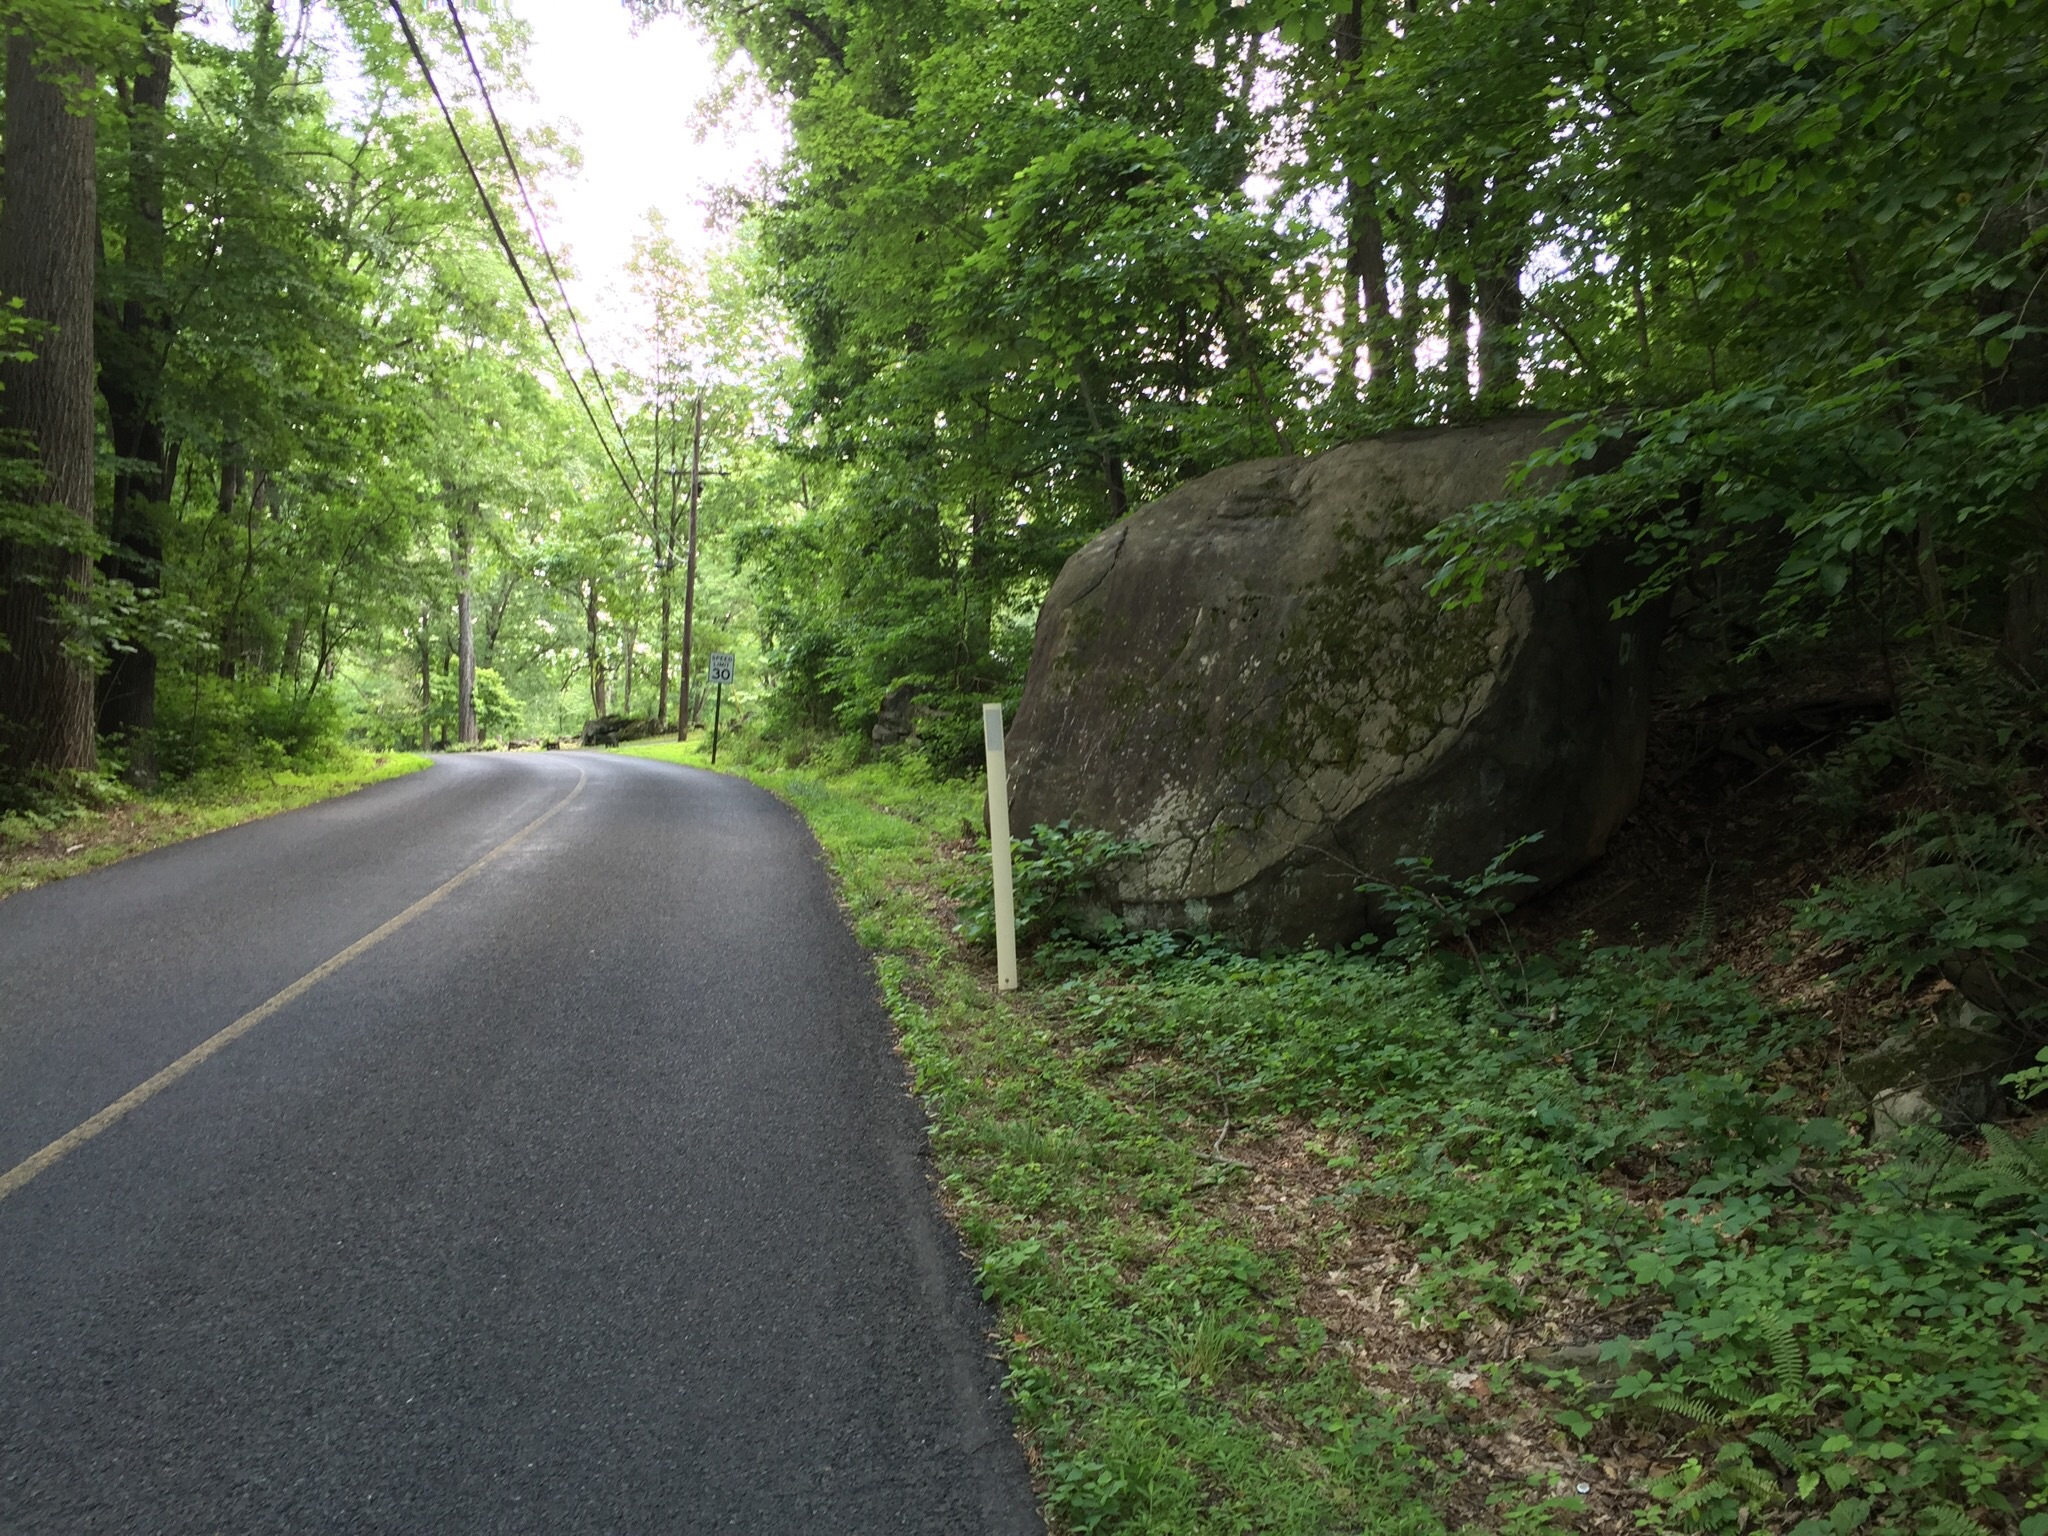 The aforementioned boulder on the side of Ringing Rocks Road to alert travelers to the vicinity of Ringing Rocks County Park.